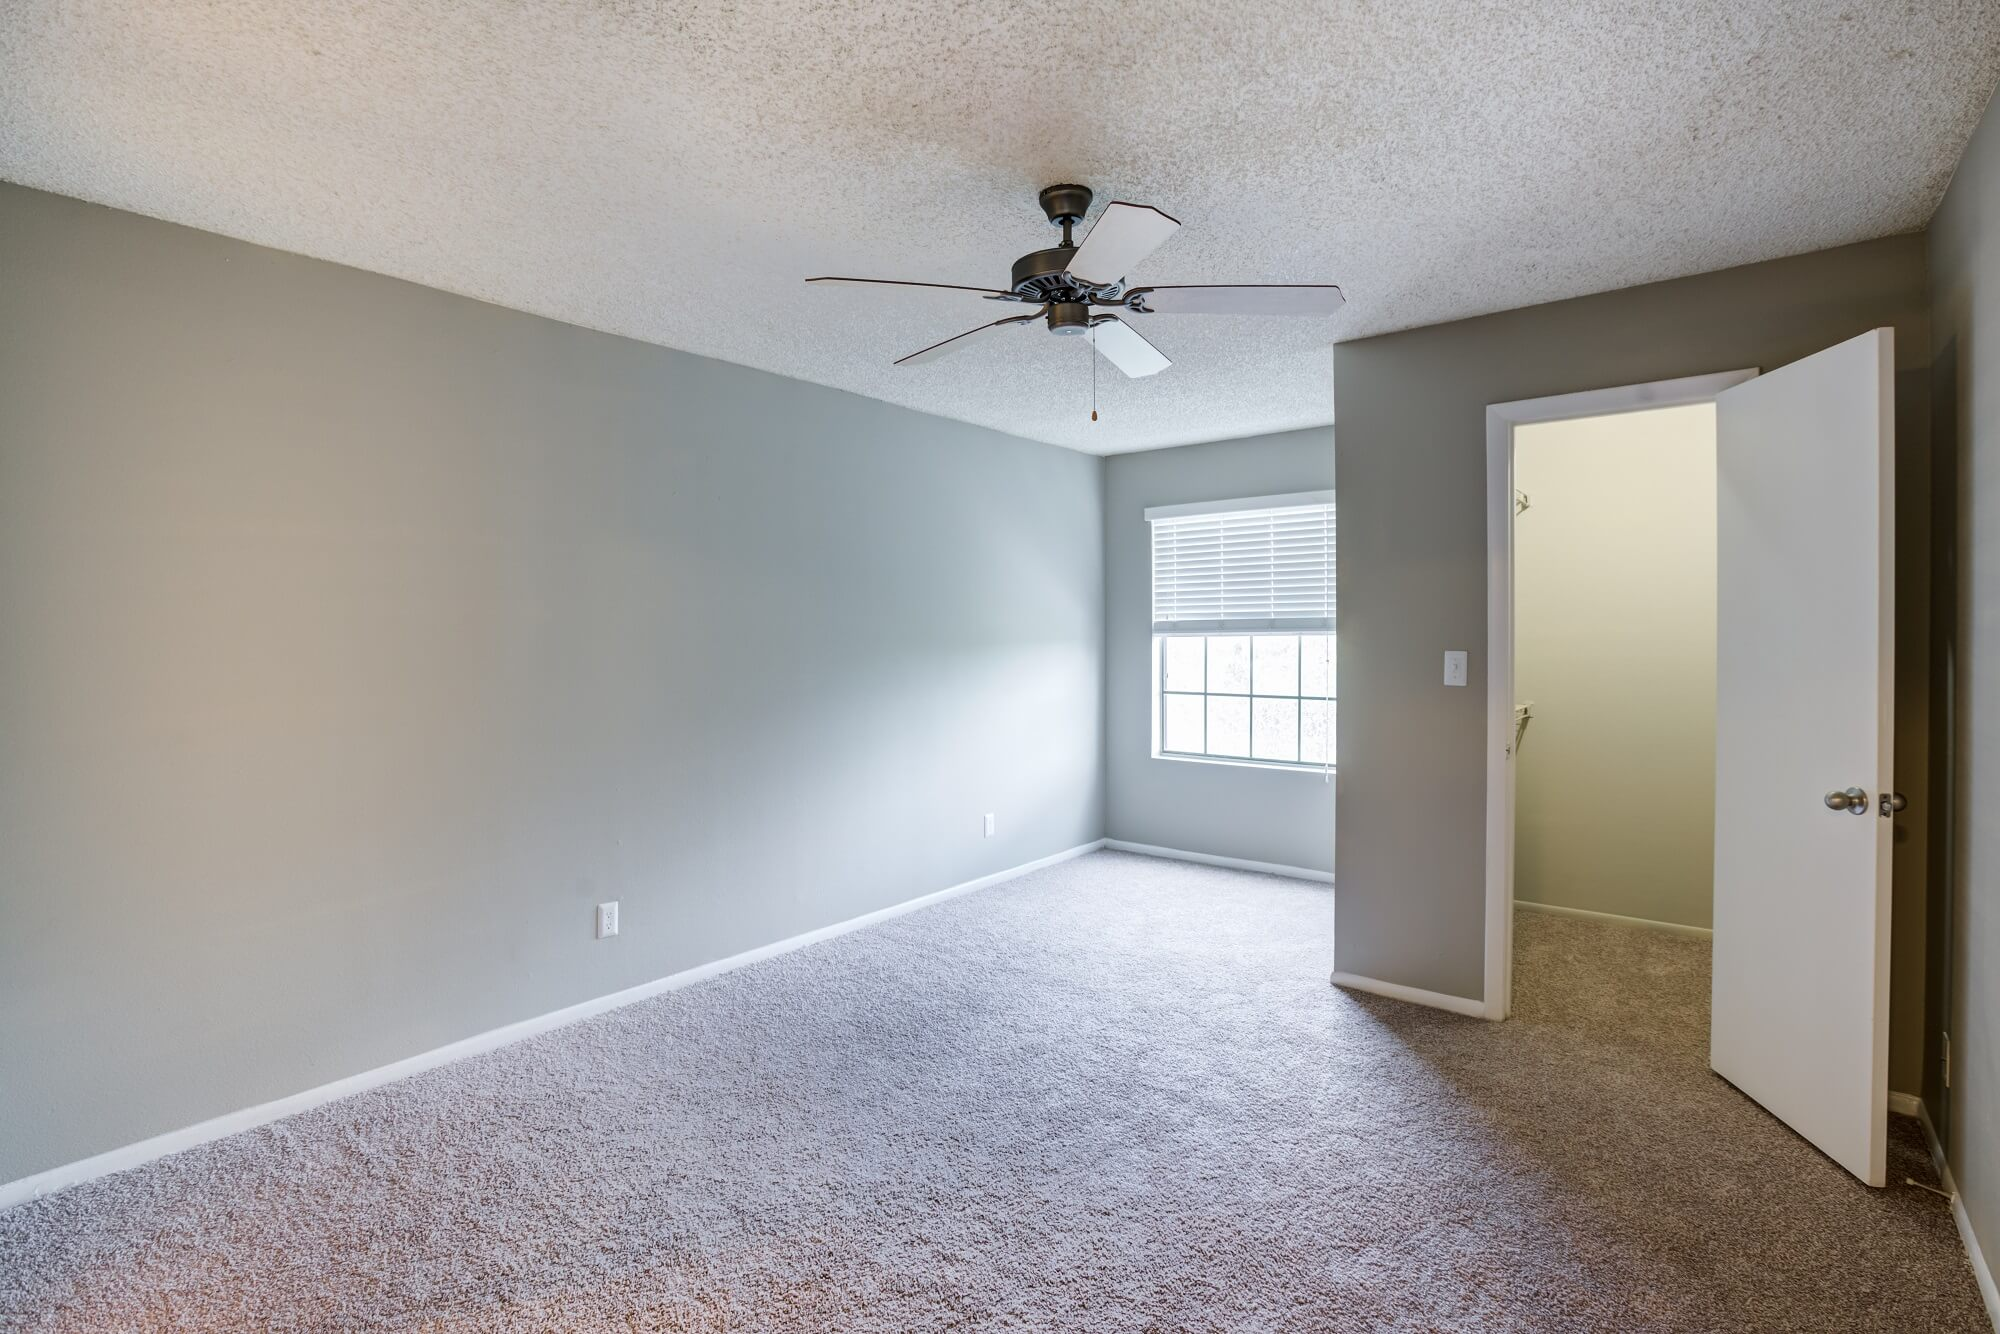 unfurnished bedroom with carpet, ceiling fan, and small closet.